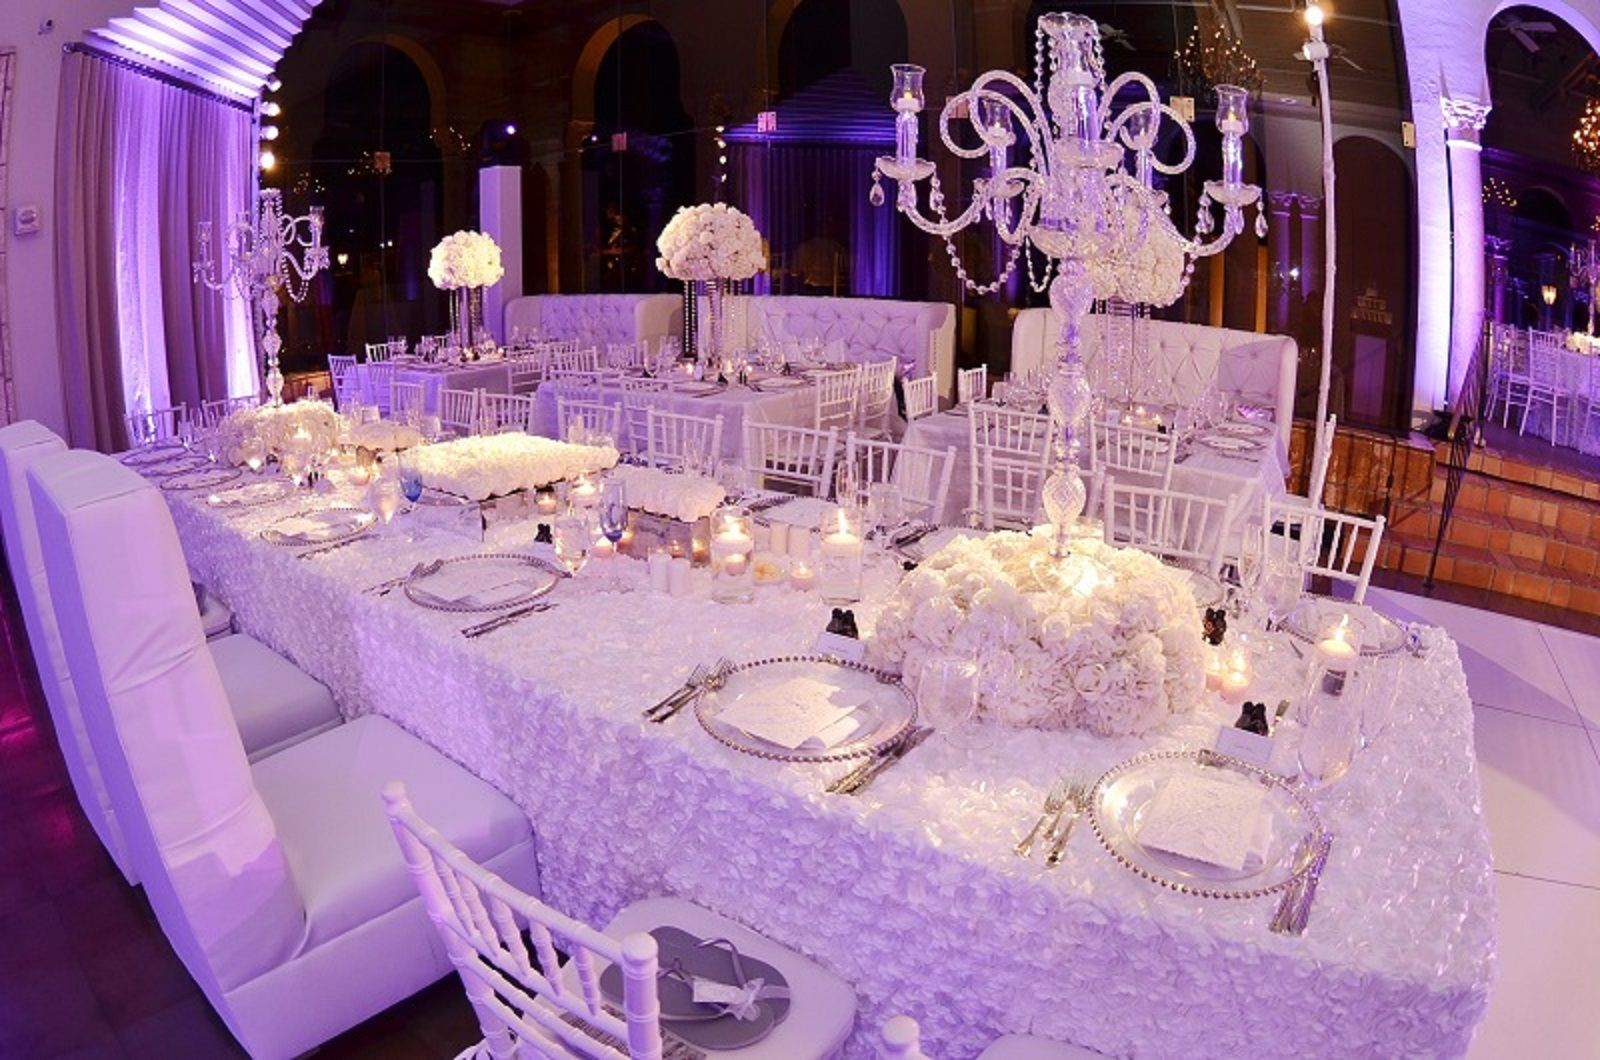 Coral Gables Country Club Is One Of The Most Beautiful Venues In The Area Description From Bittonevents Com I Searched For This O Wedding Rentals Tent Wedding